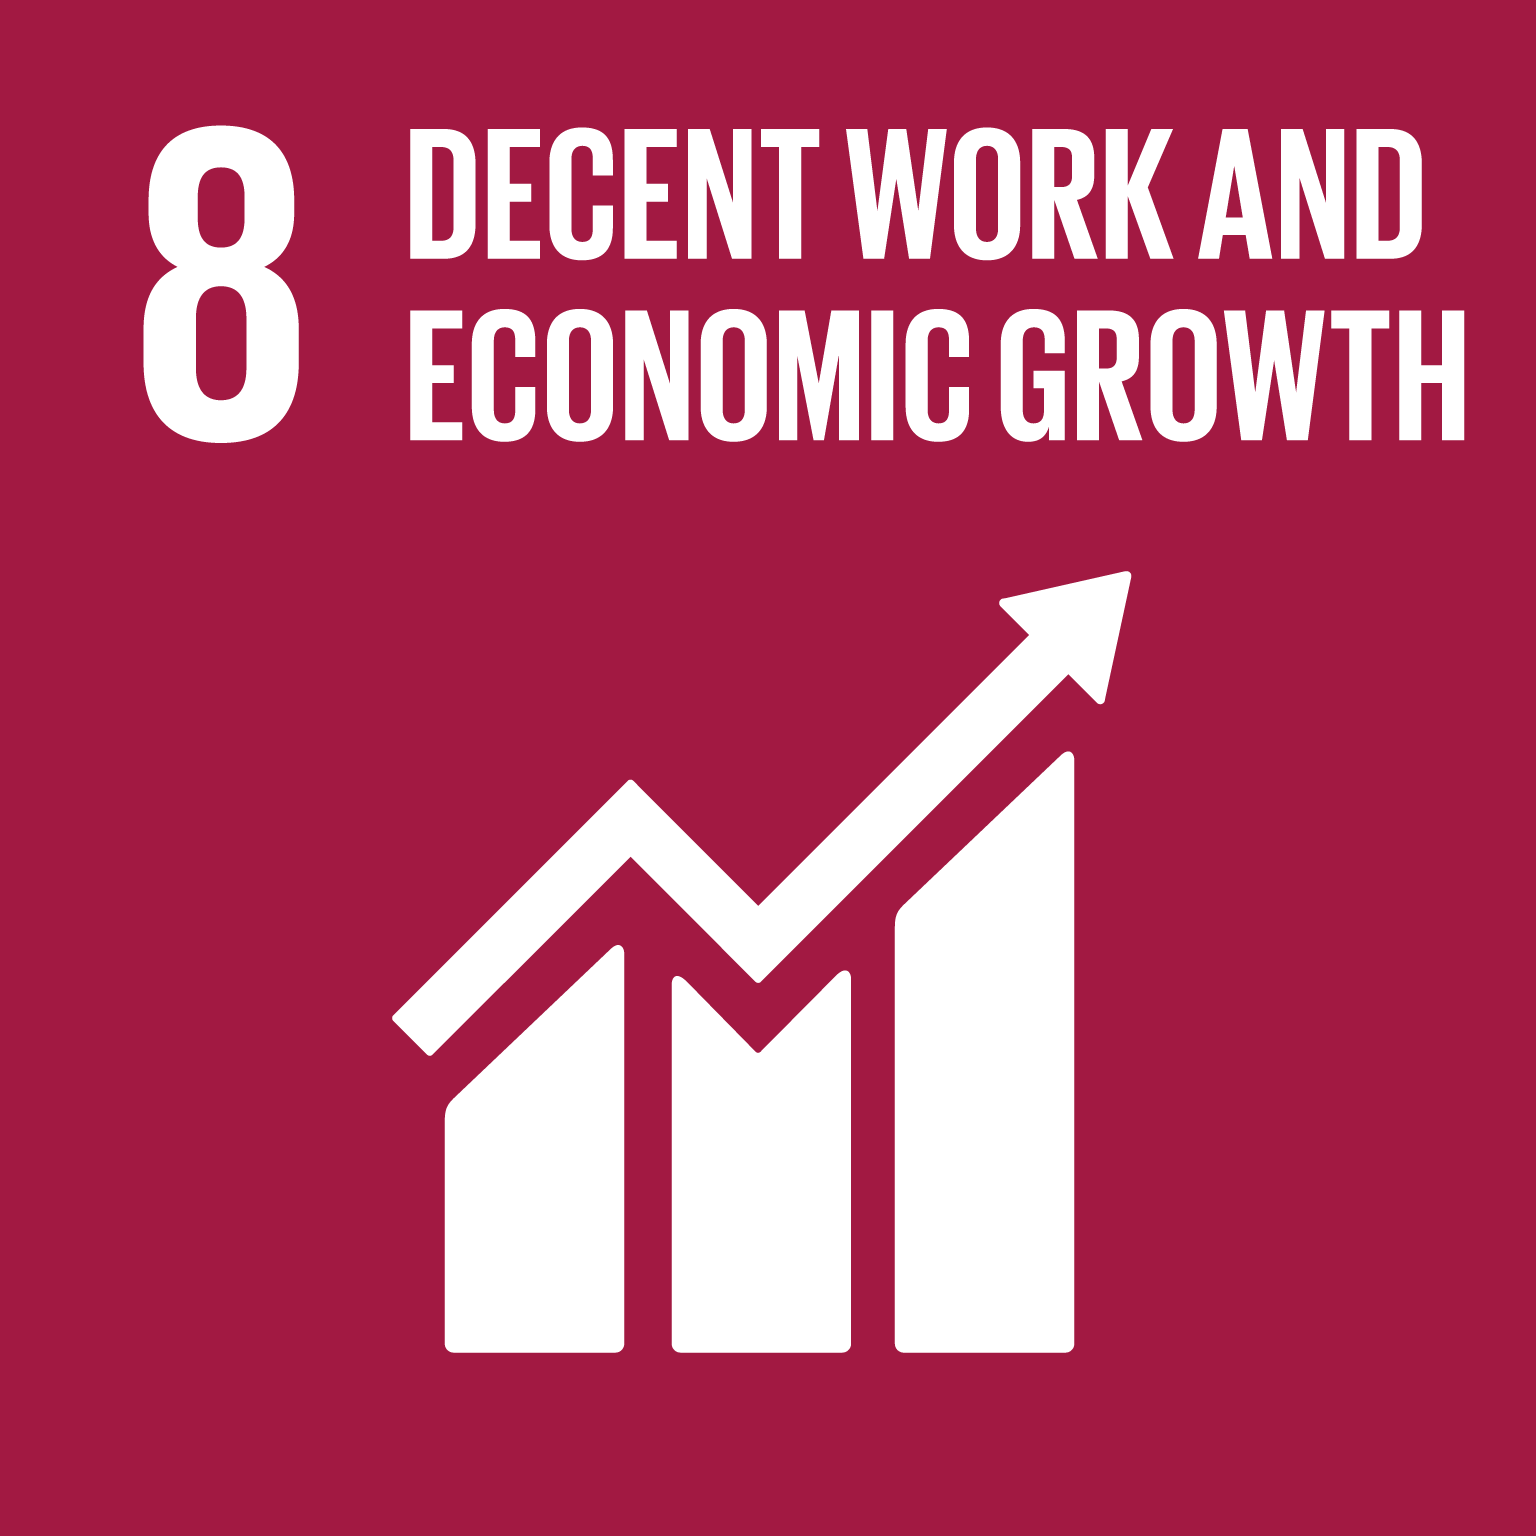 The SDGs icons of DECENT WORK AND ECONOMIC GROWTH